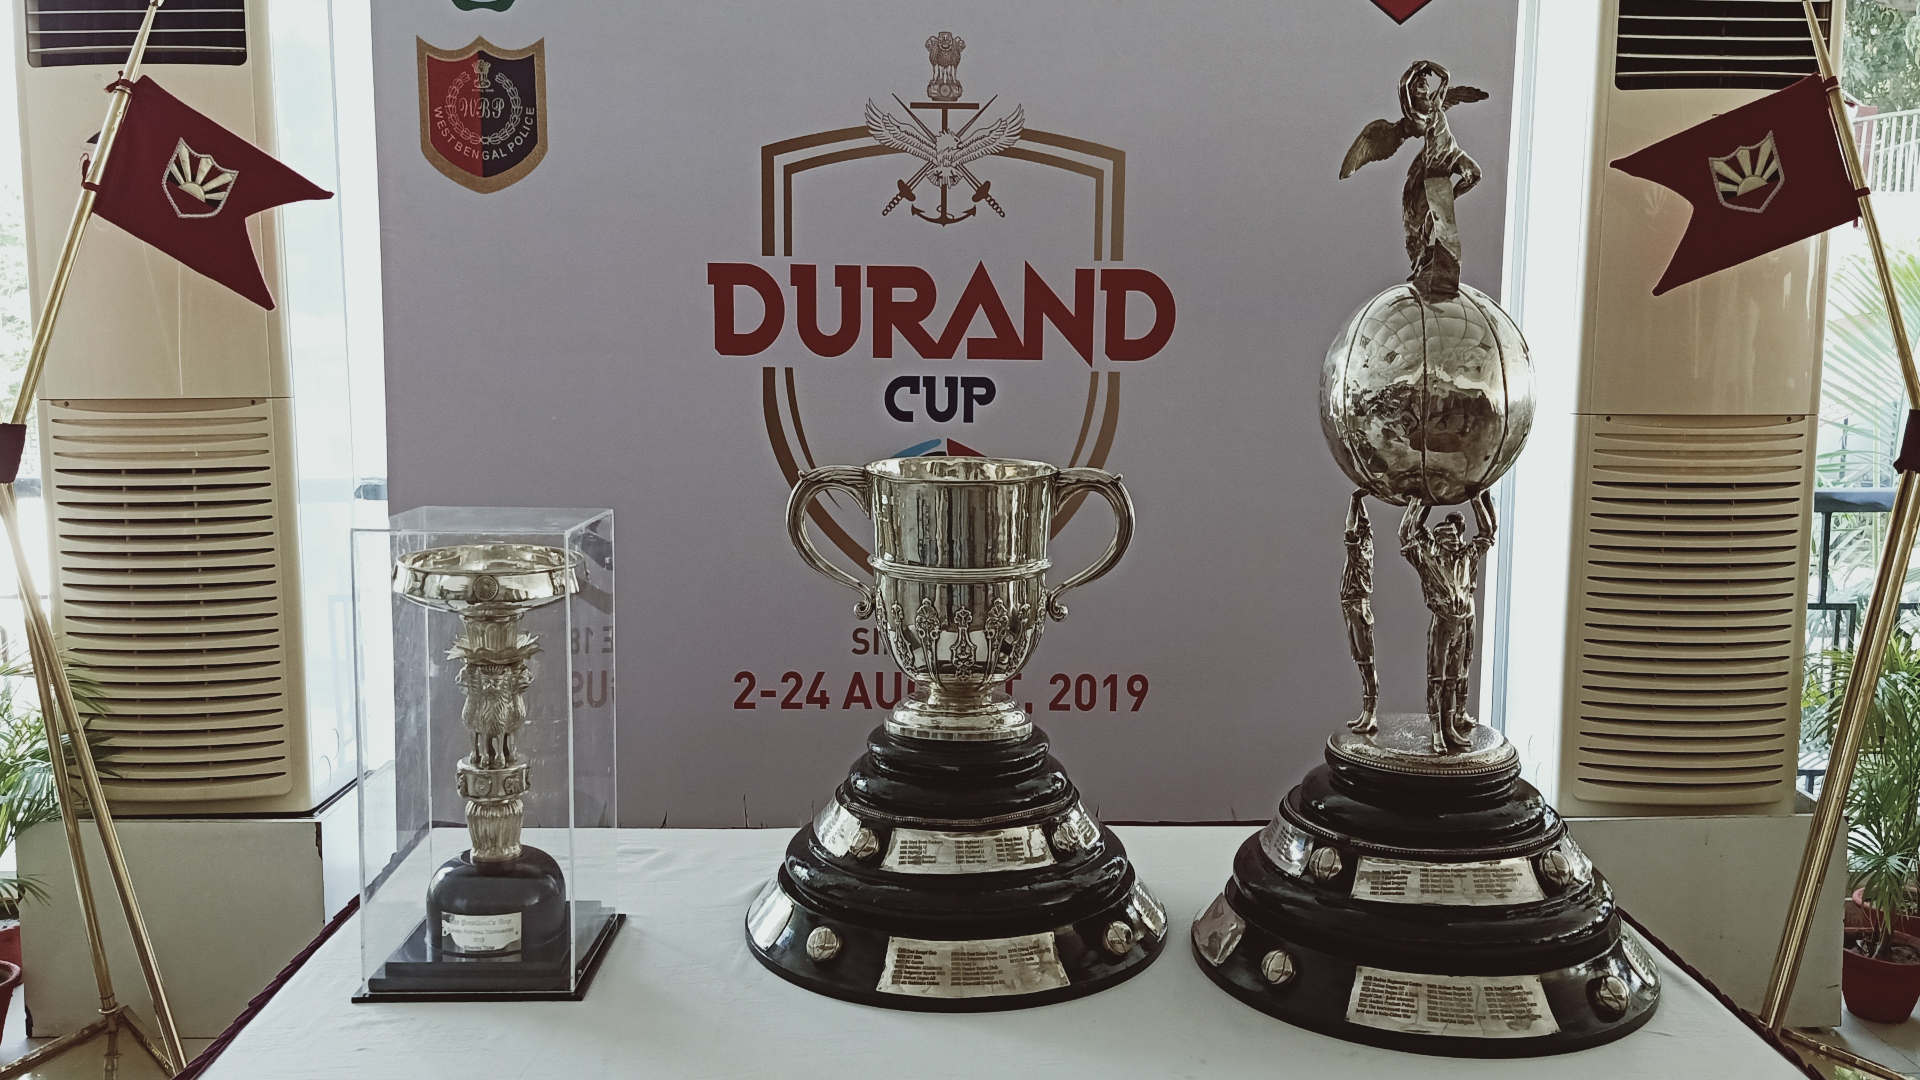 East Bengal to field reserve side for Durand Cup